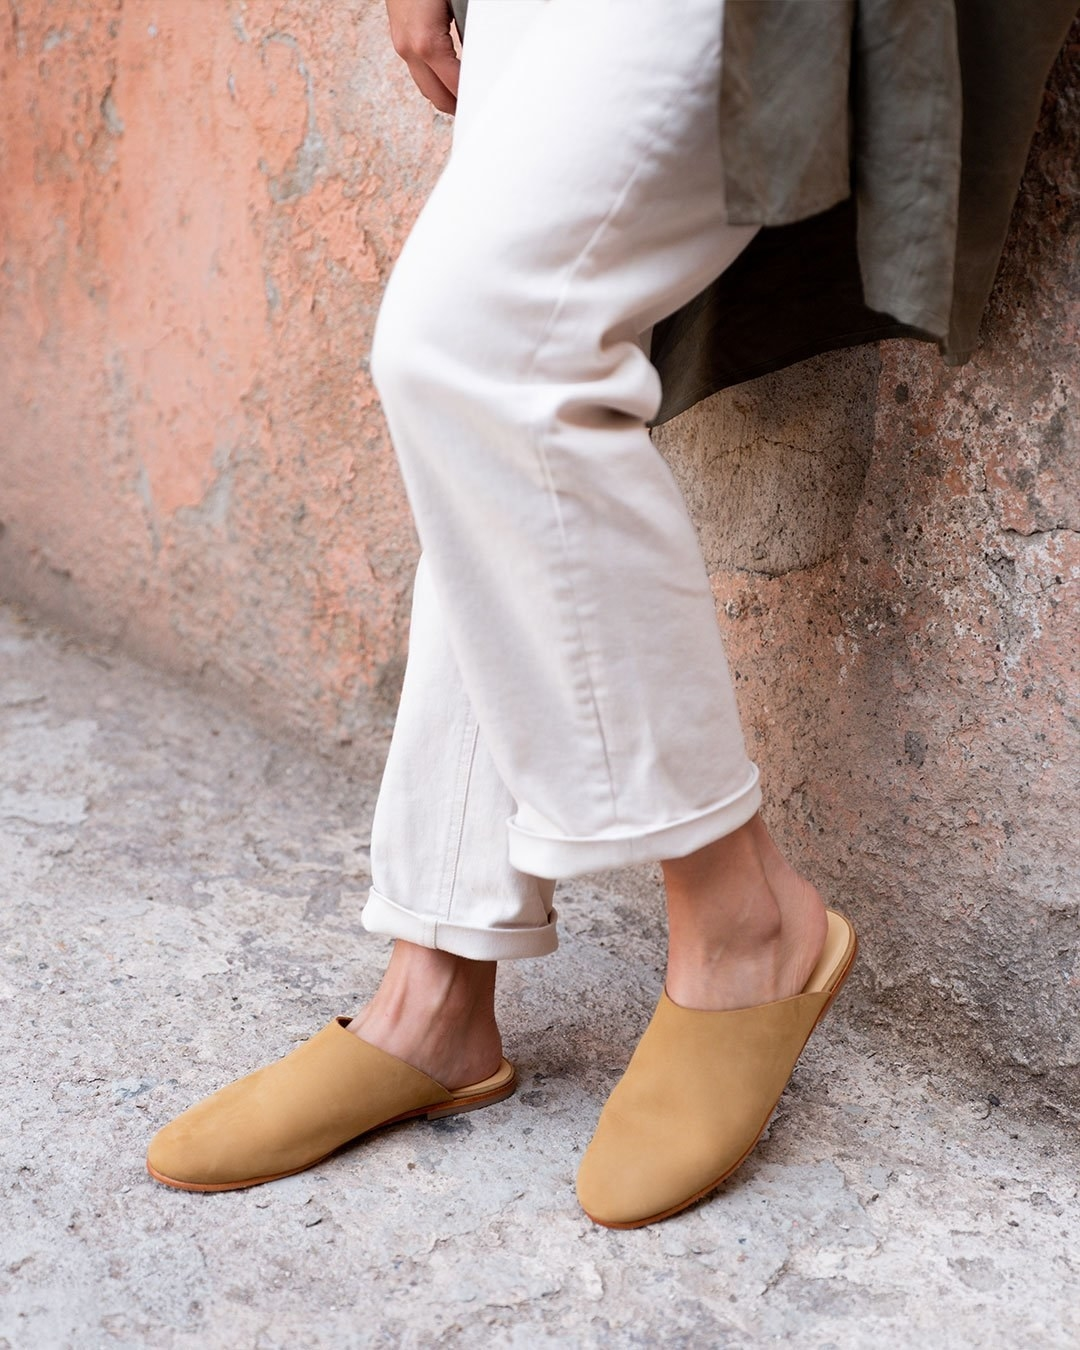 Model wearing the slip-on mule in a sand color